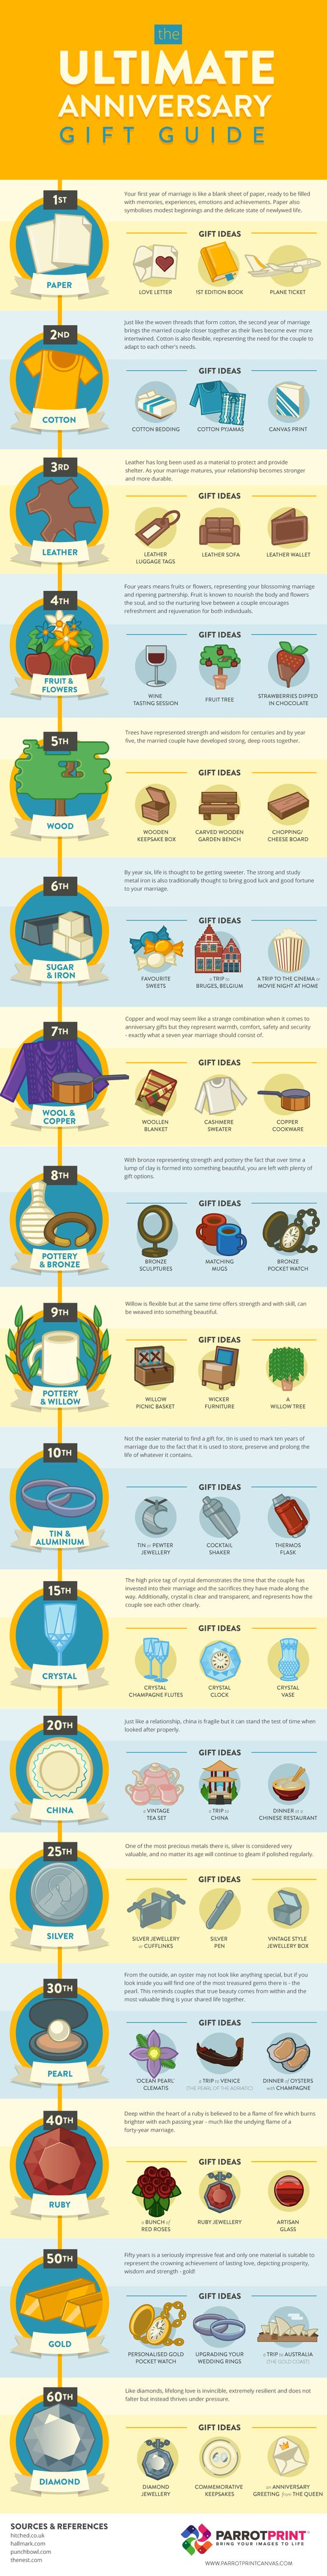 The Ultimate #Anniversary #Gift Guide - Do you fancy an infographic? There are a lot of them online, but if you want your own please visit http://www.linfografico.com/prezzi/ Online girano molte infografiche, se ne vuoi realizzare una tutta tua visita http://www.linfografico.com/prezzi/